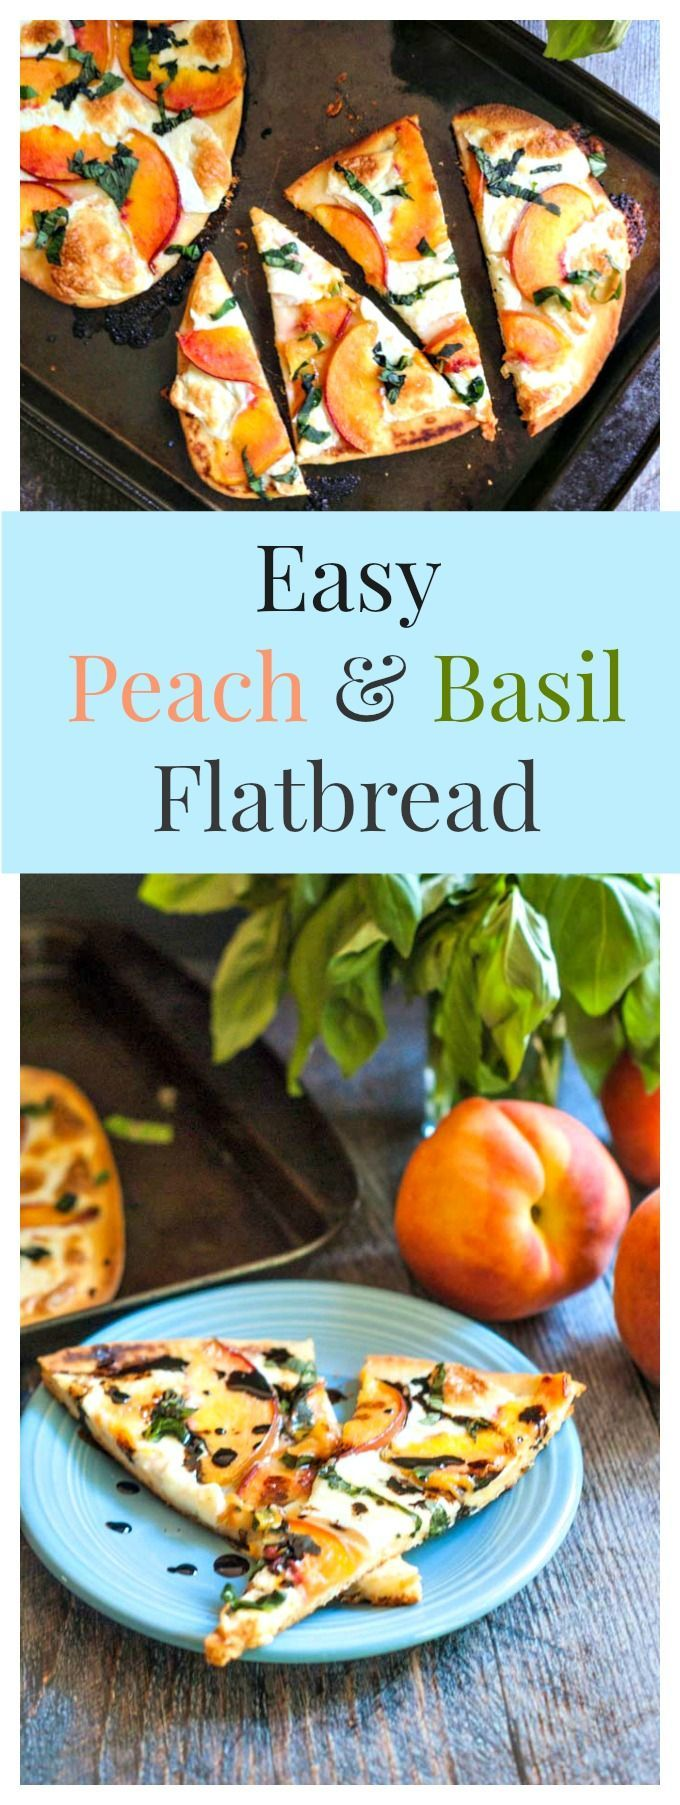 Easy Peach and Basil Flatbread ~ Perfect for those ripe peaches in season, as well as herbs from the garden!